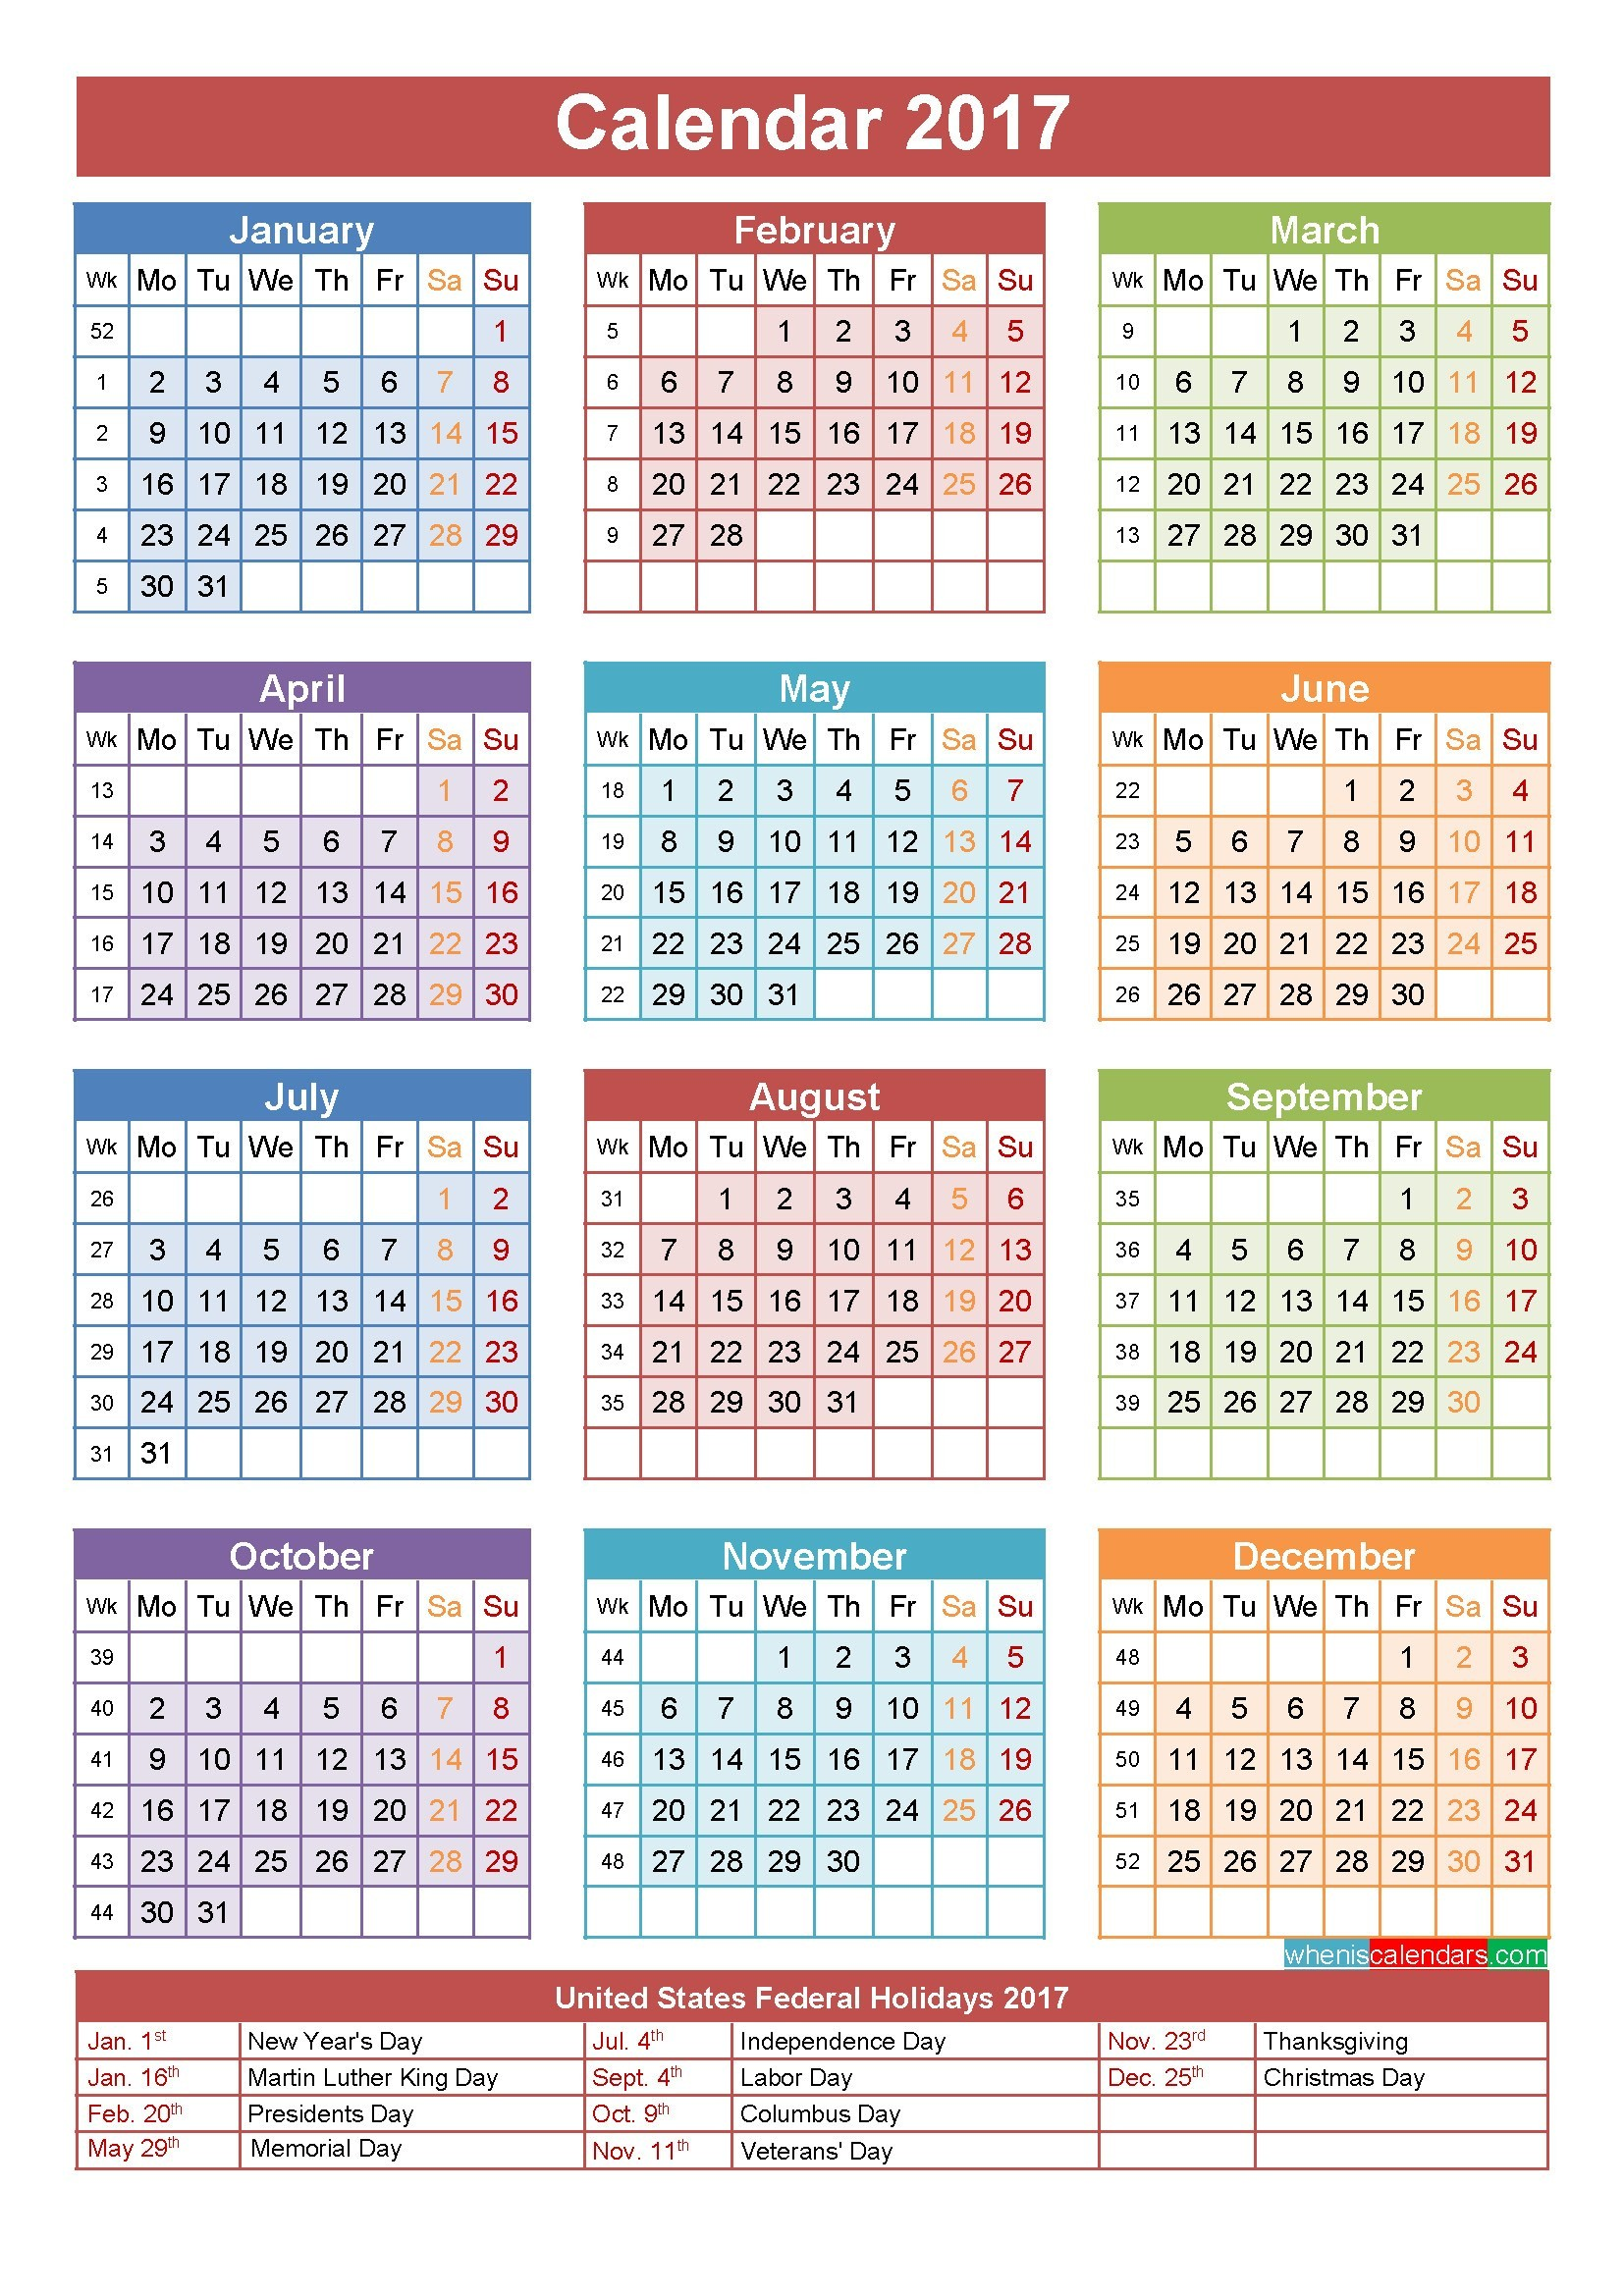 Calendar hindu holidays hindu festivals calendar hindu hindi tithi holidays calendar picturesque 1654x2339 Tithi 2019